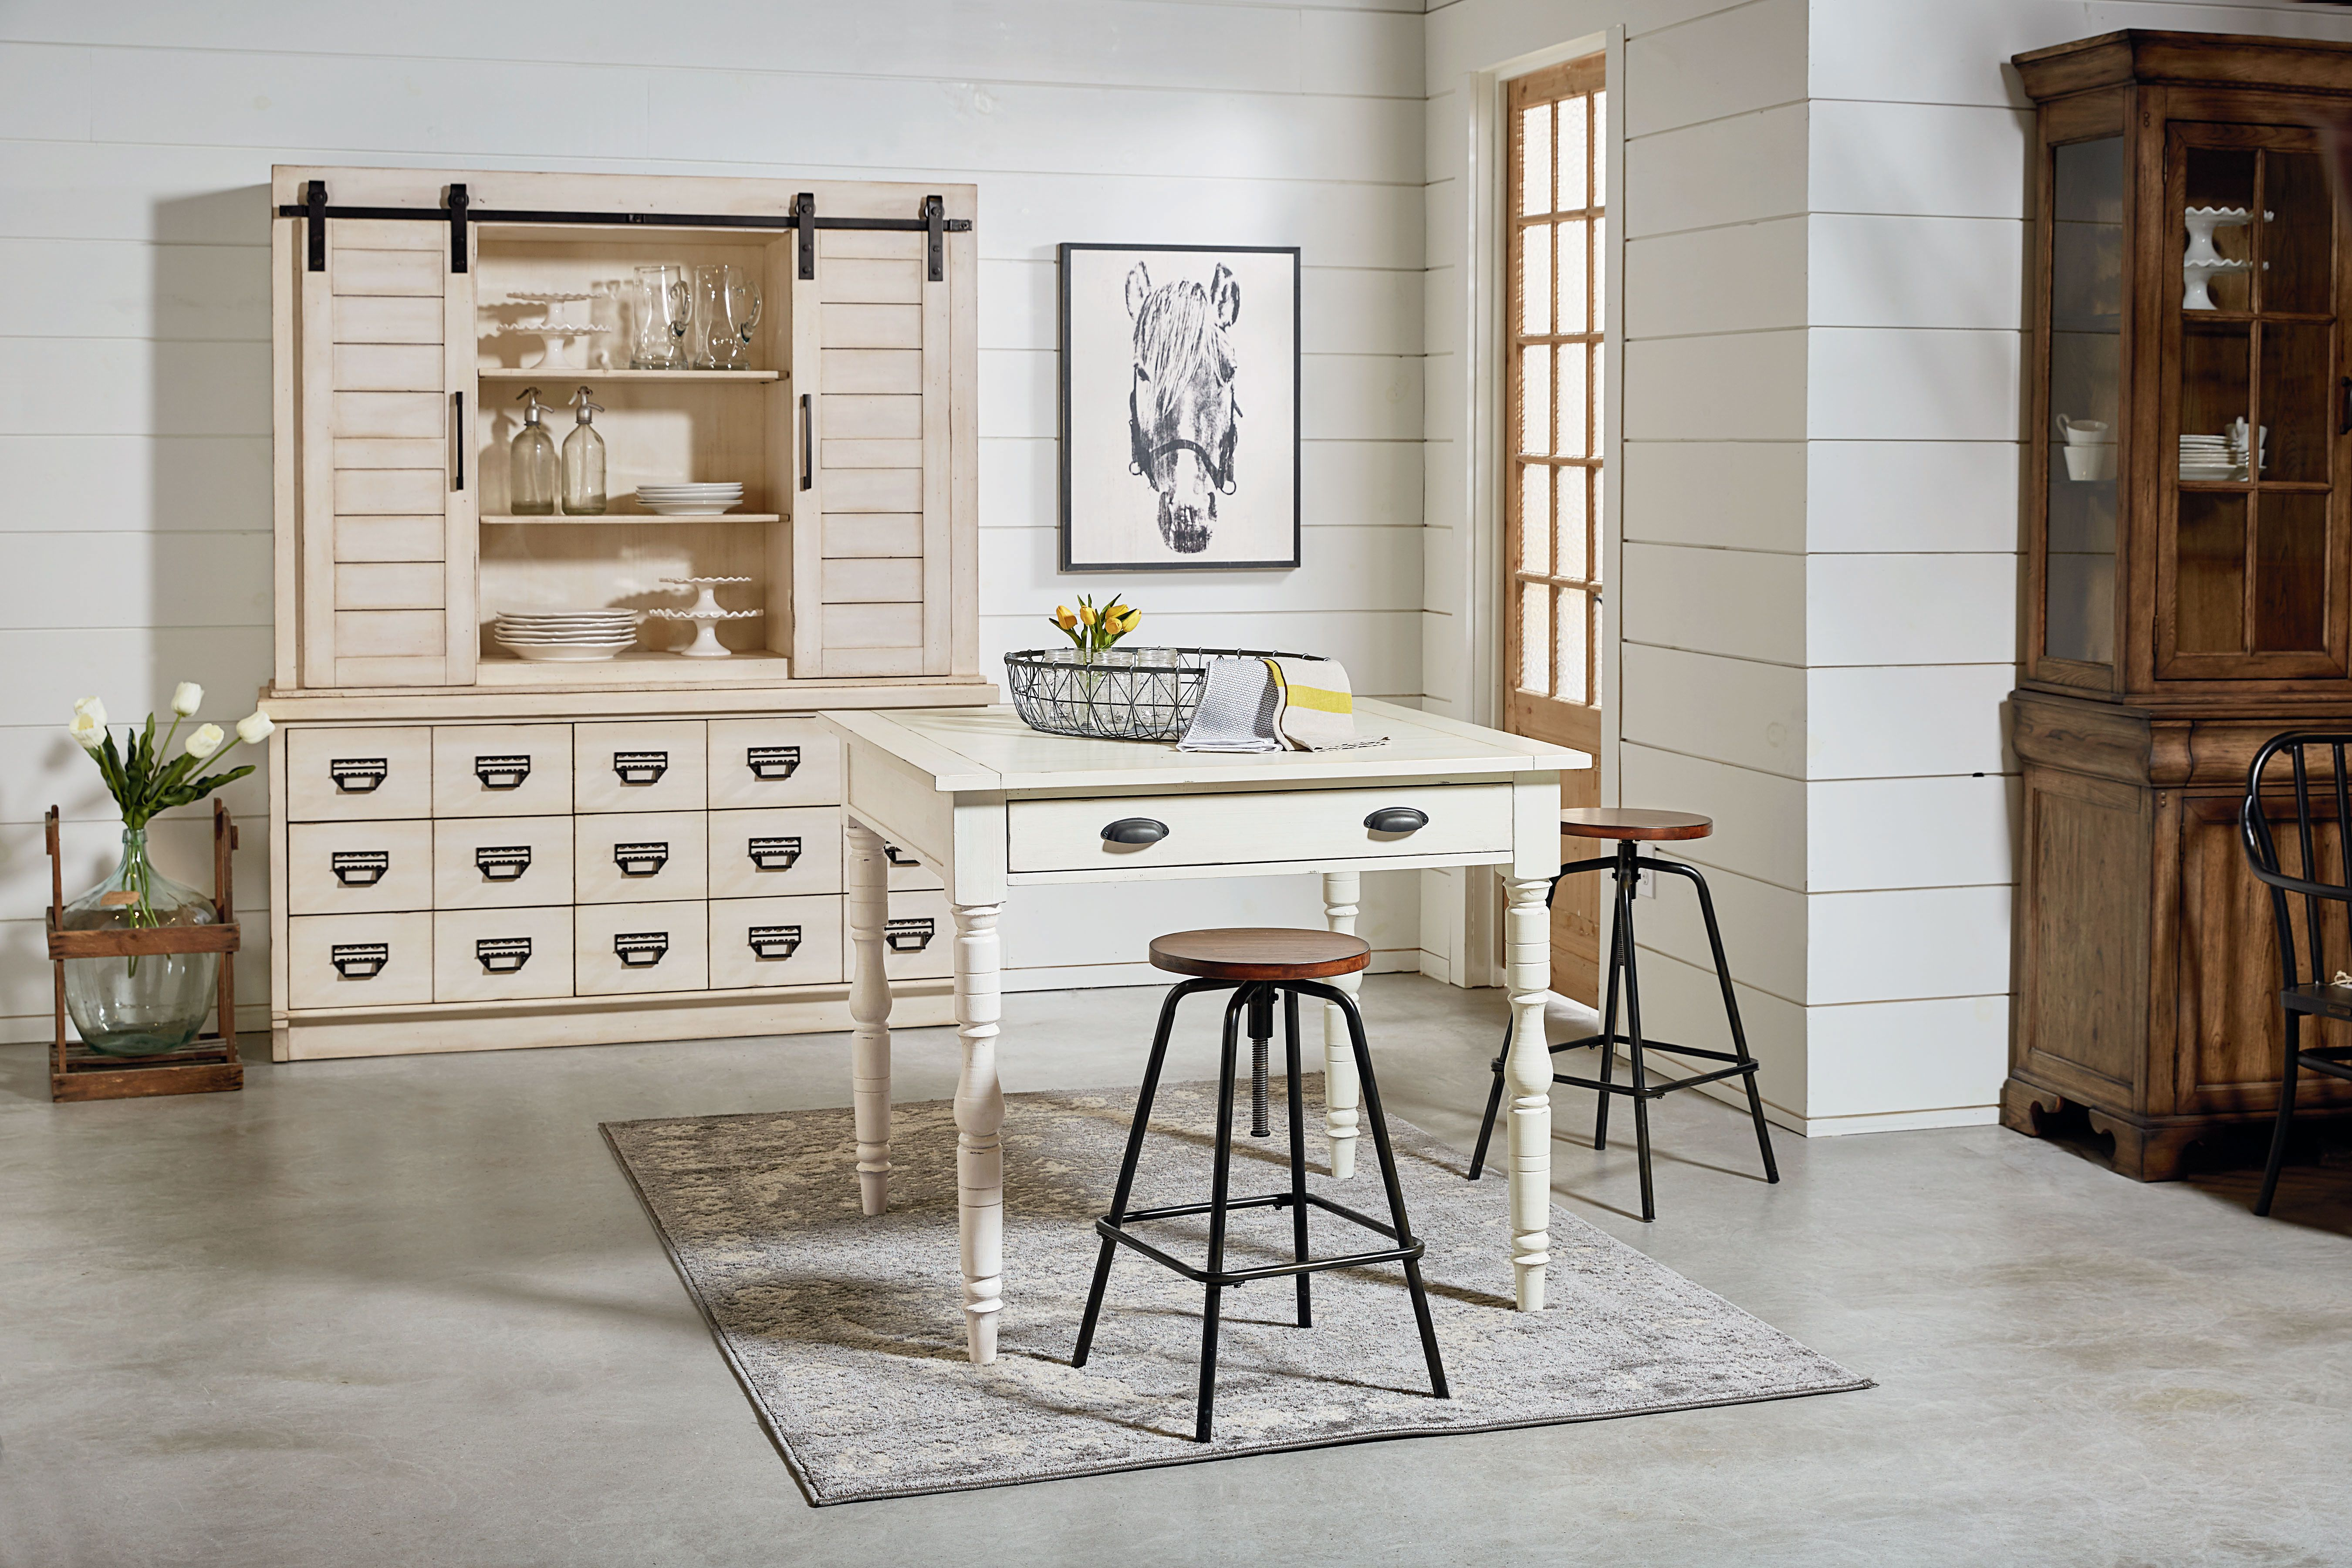 Magnolia Home by Joanna Gaines at Levin Furniture Spring Summer